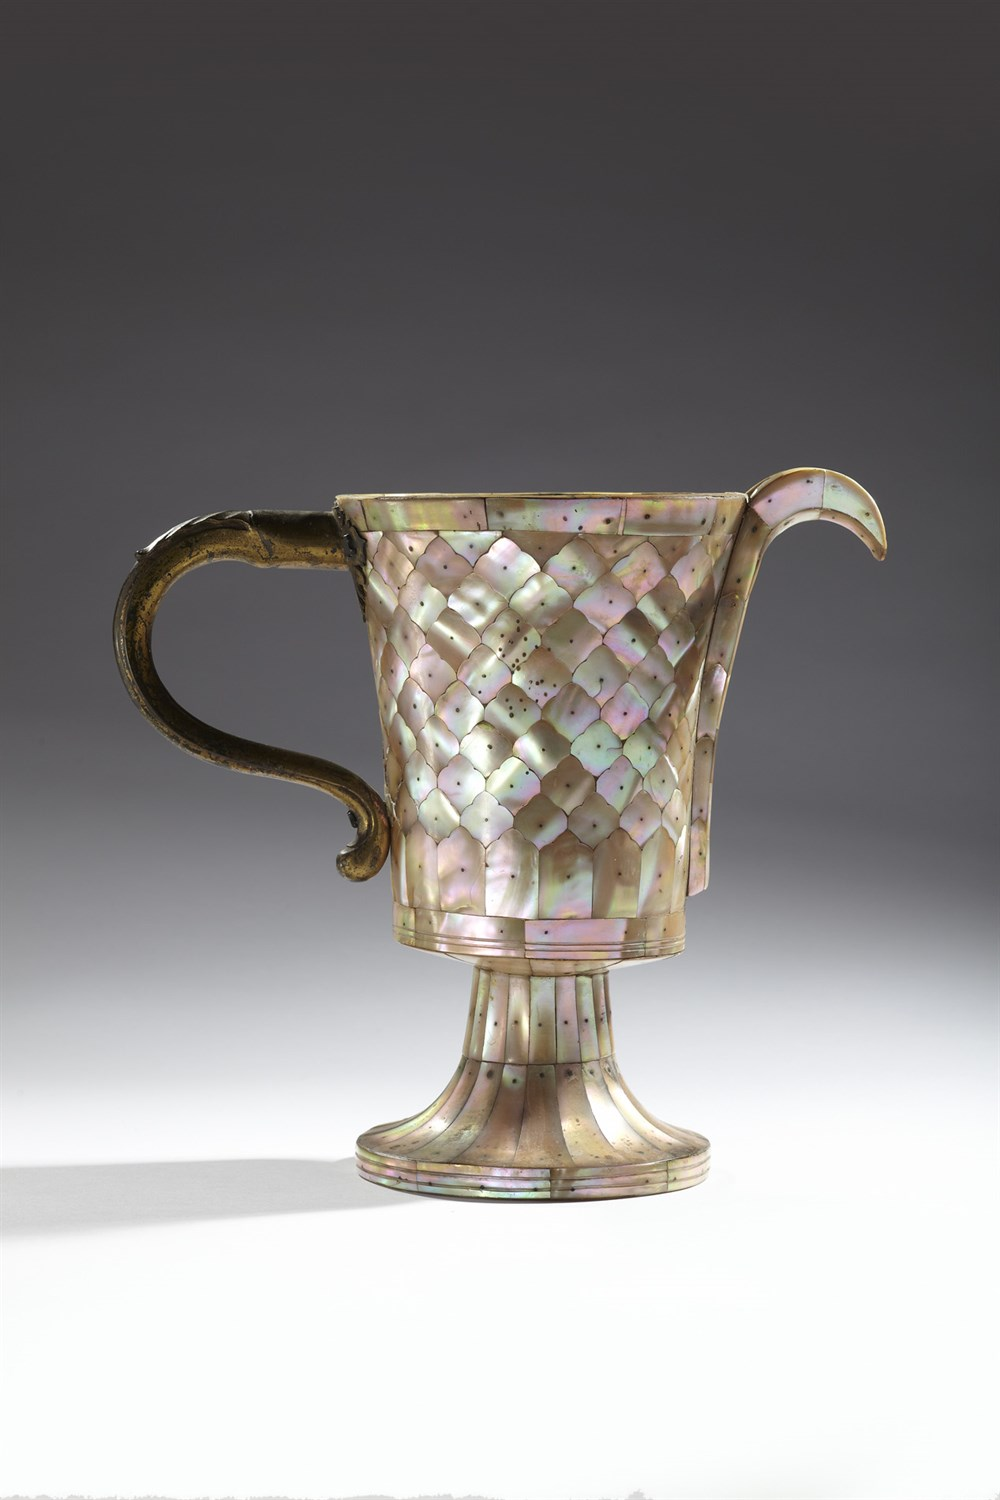 515 - MUGHAL, GUJARAT, MOTHER-OF-PEARL EWER